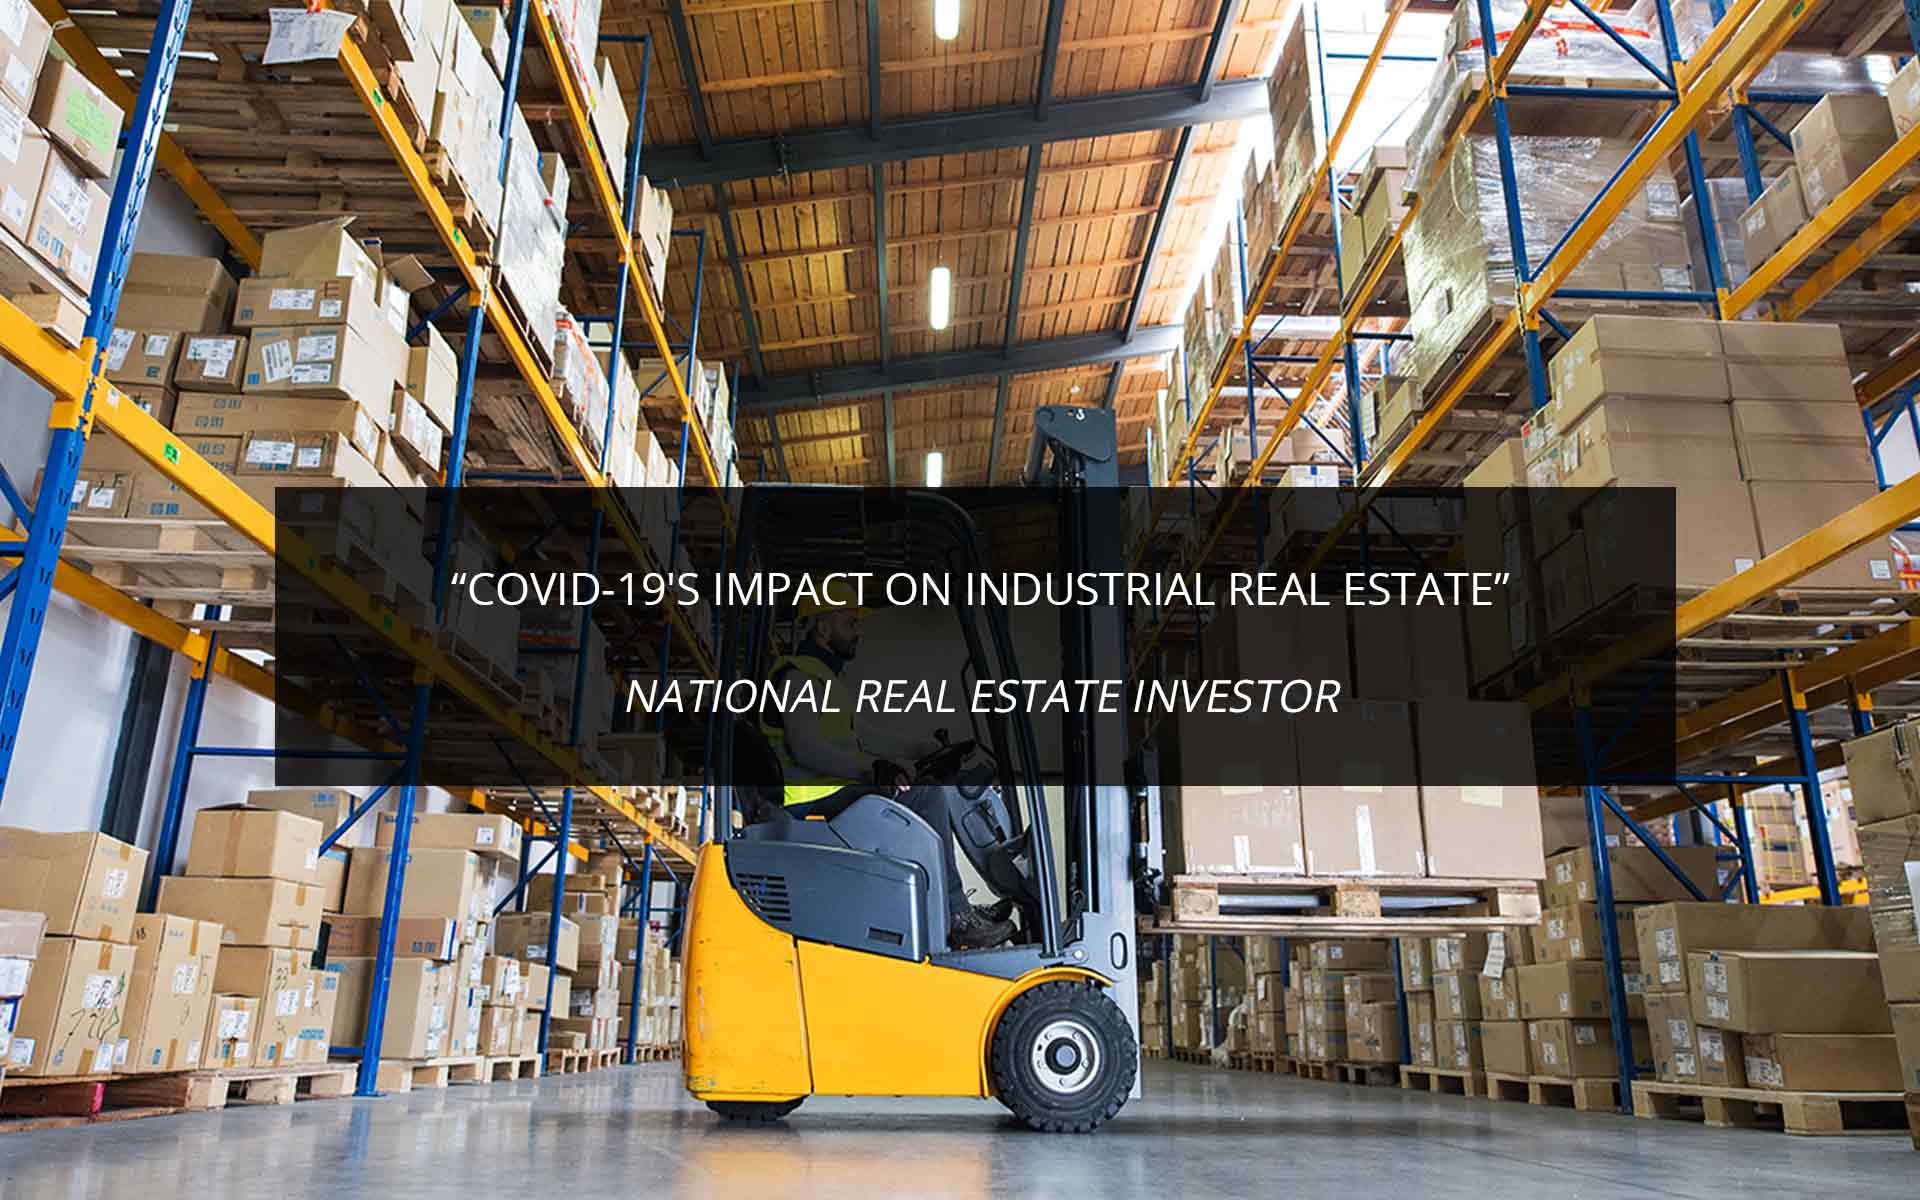 COVID-19's Impact on Industrial Real Estate